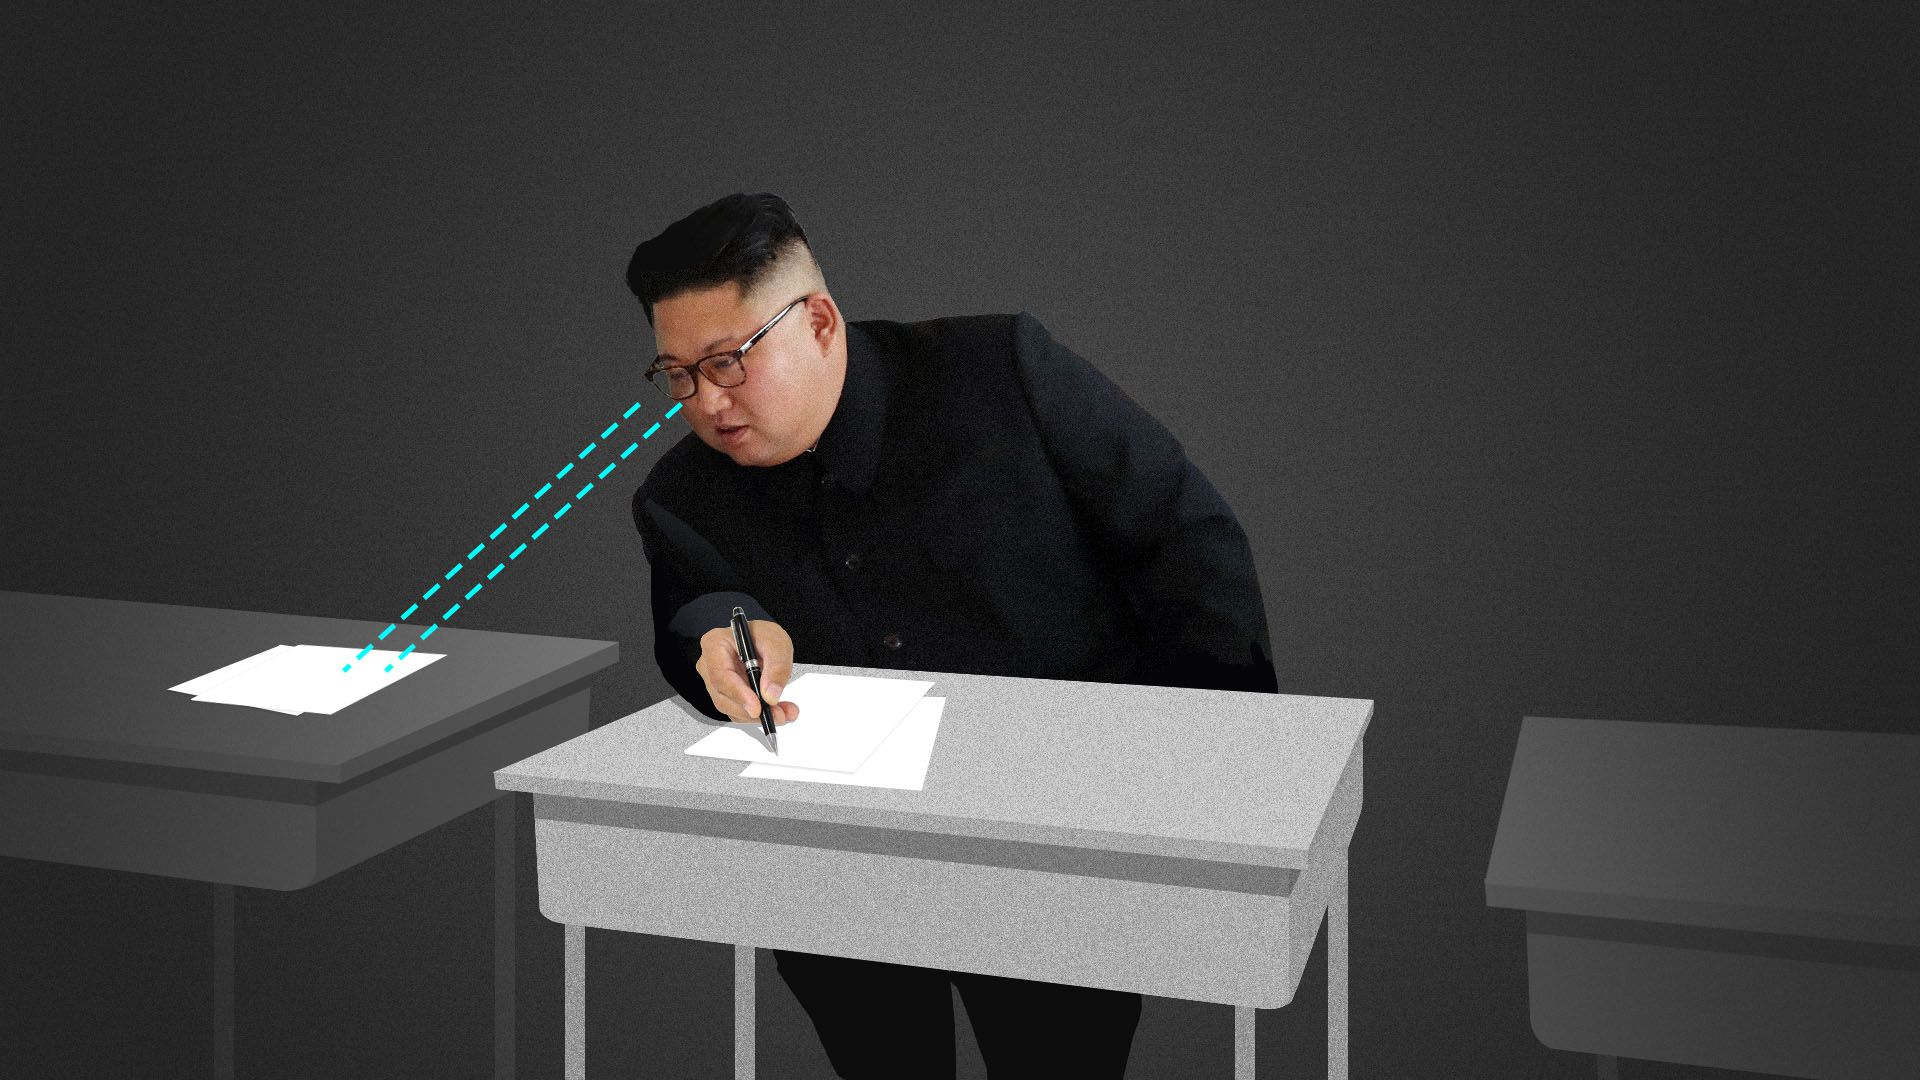 Illustration of Kim Jong-un cheating on a test